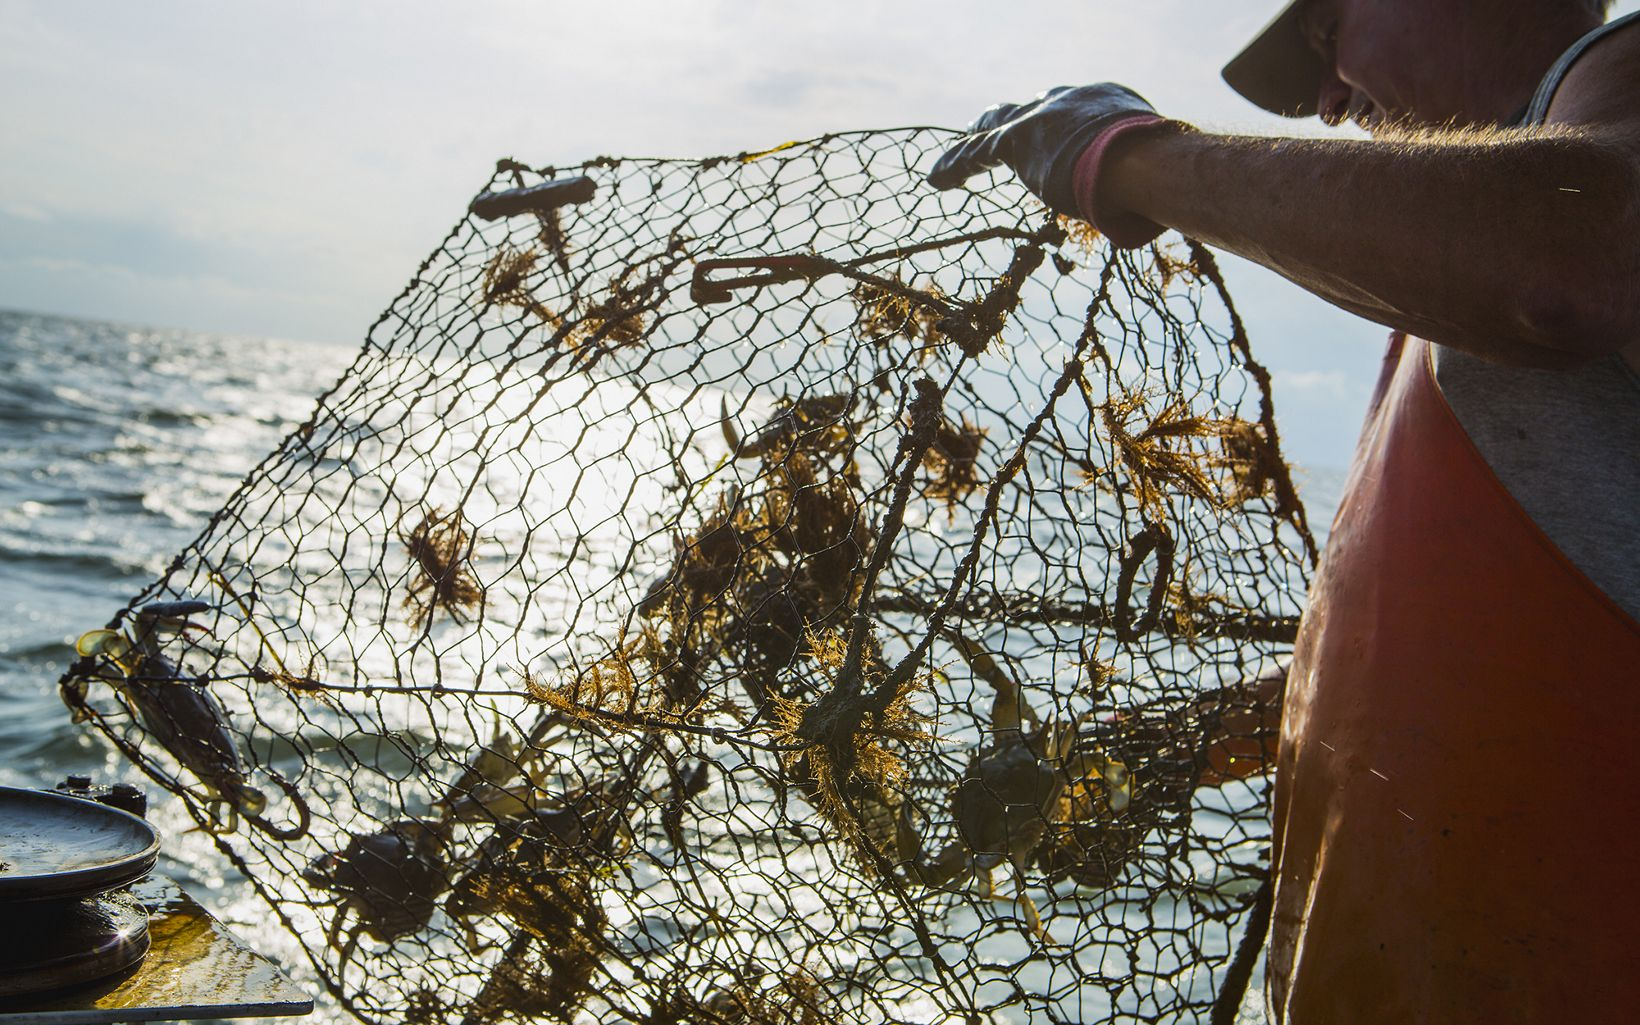 A man pulls a cage of blue crabs out of the water